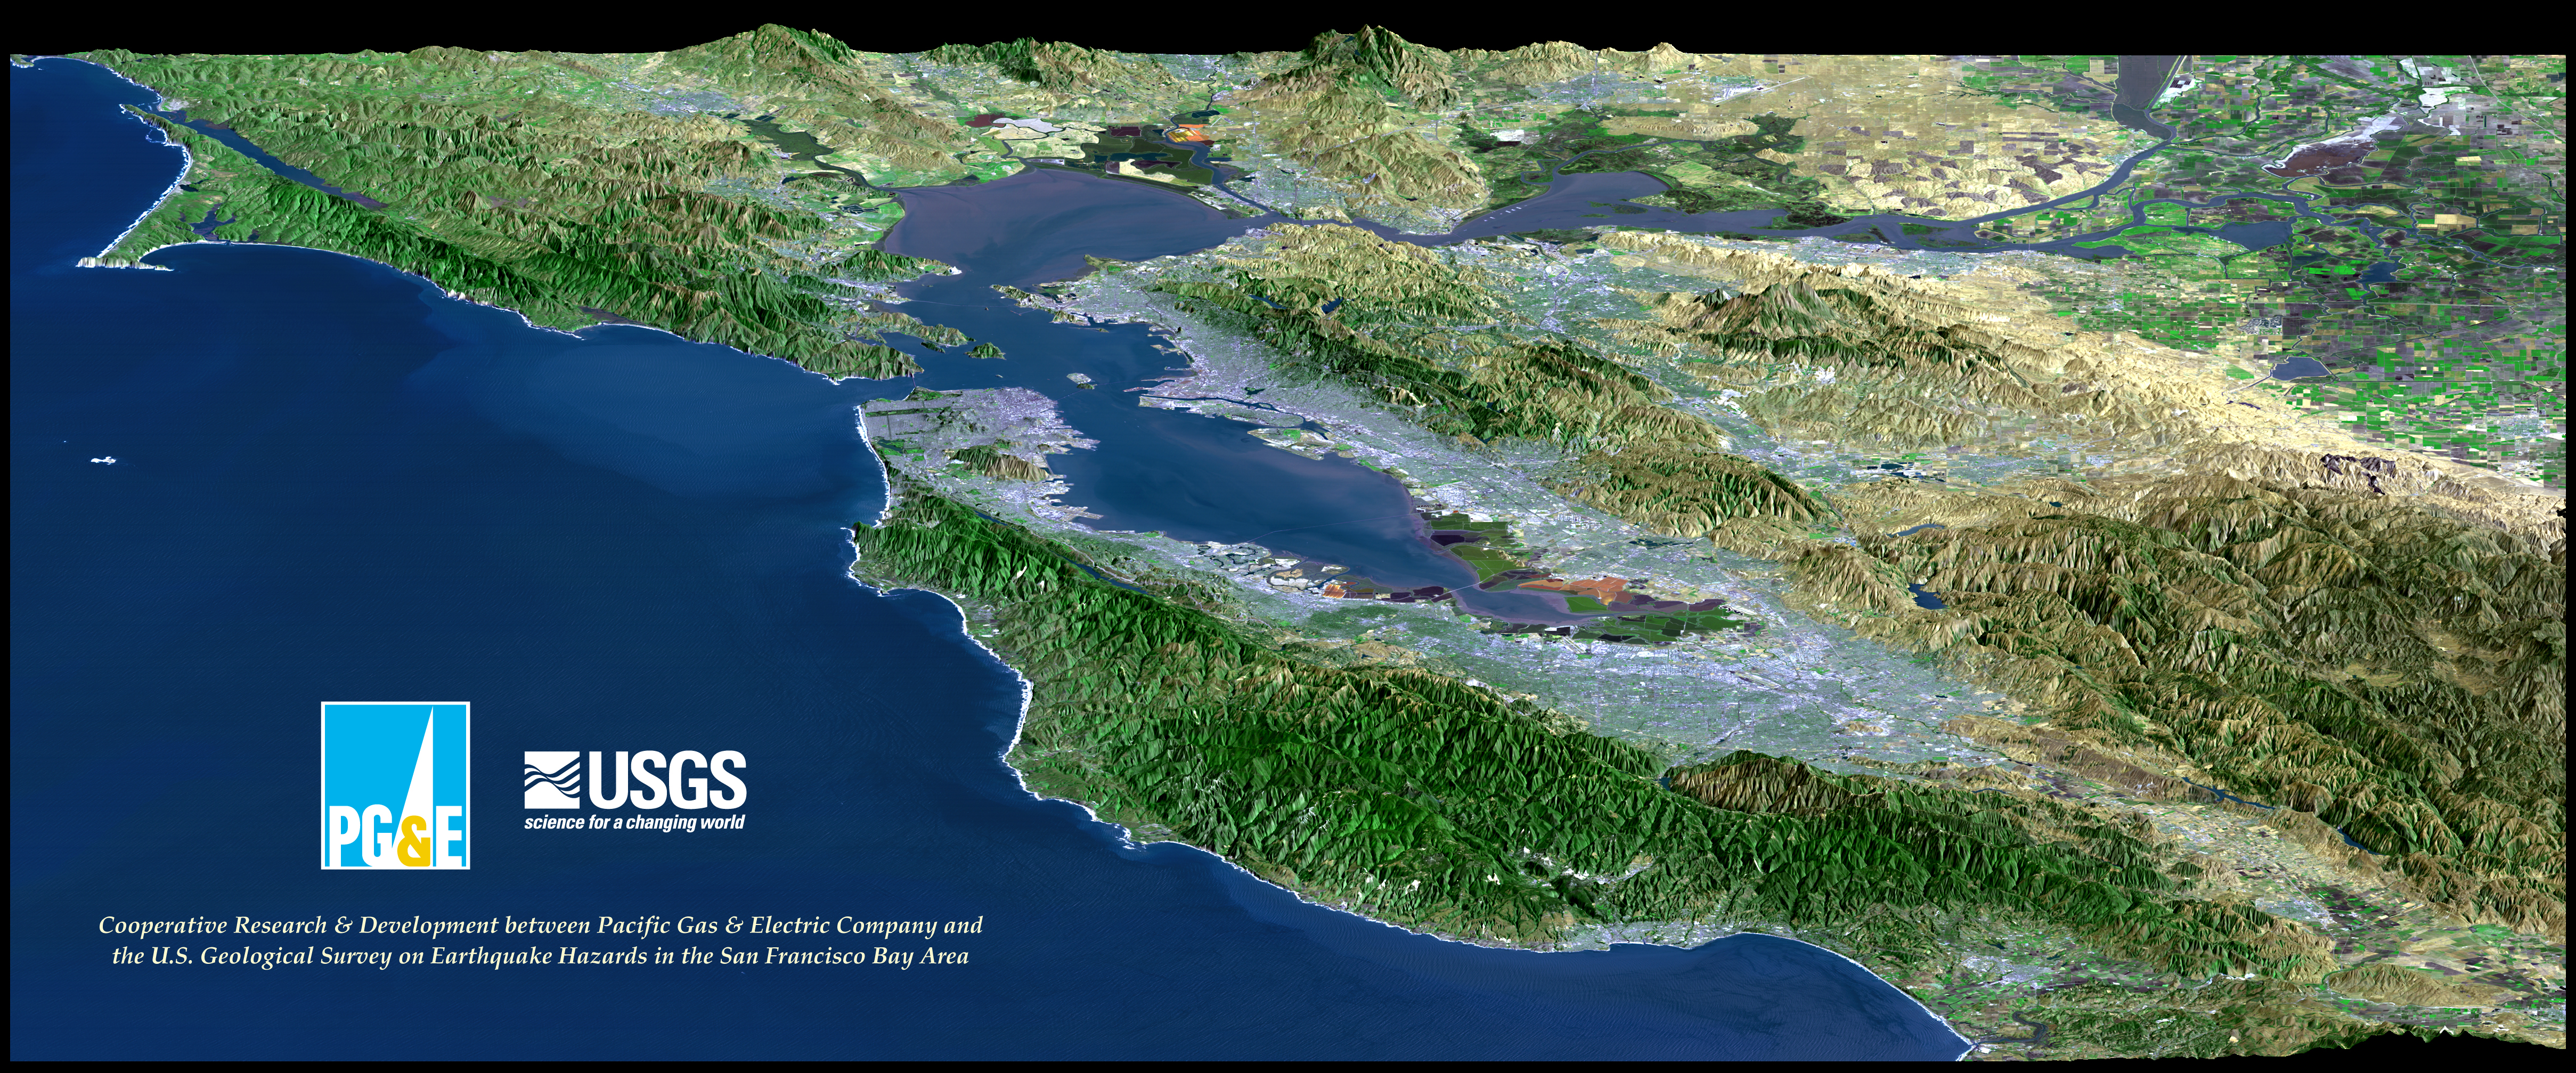 Index Of Library Images Maps Location map of san francisco bay area. index of library images maps